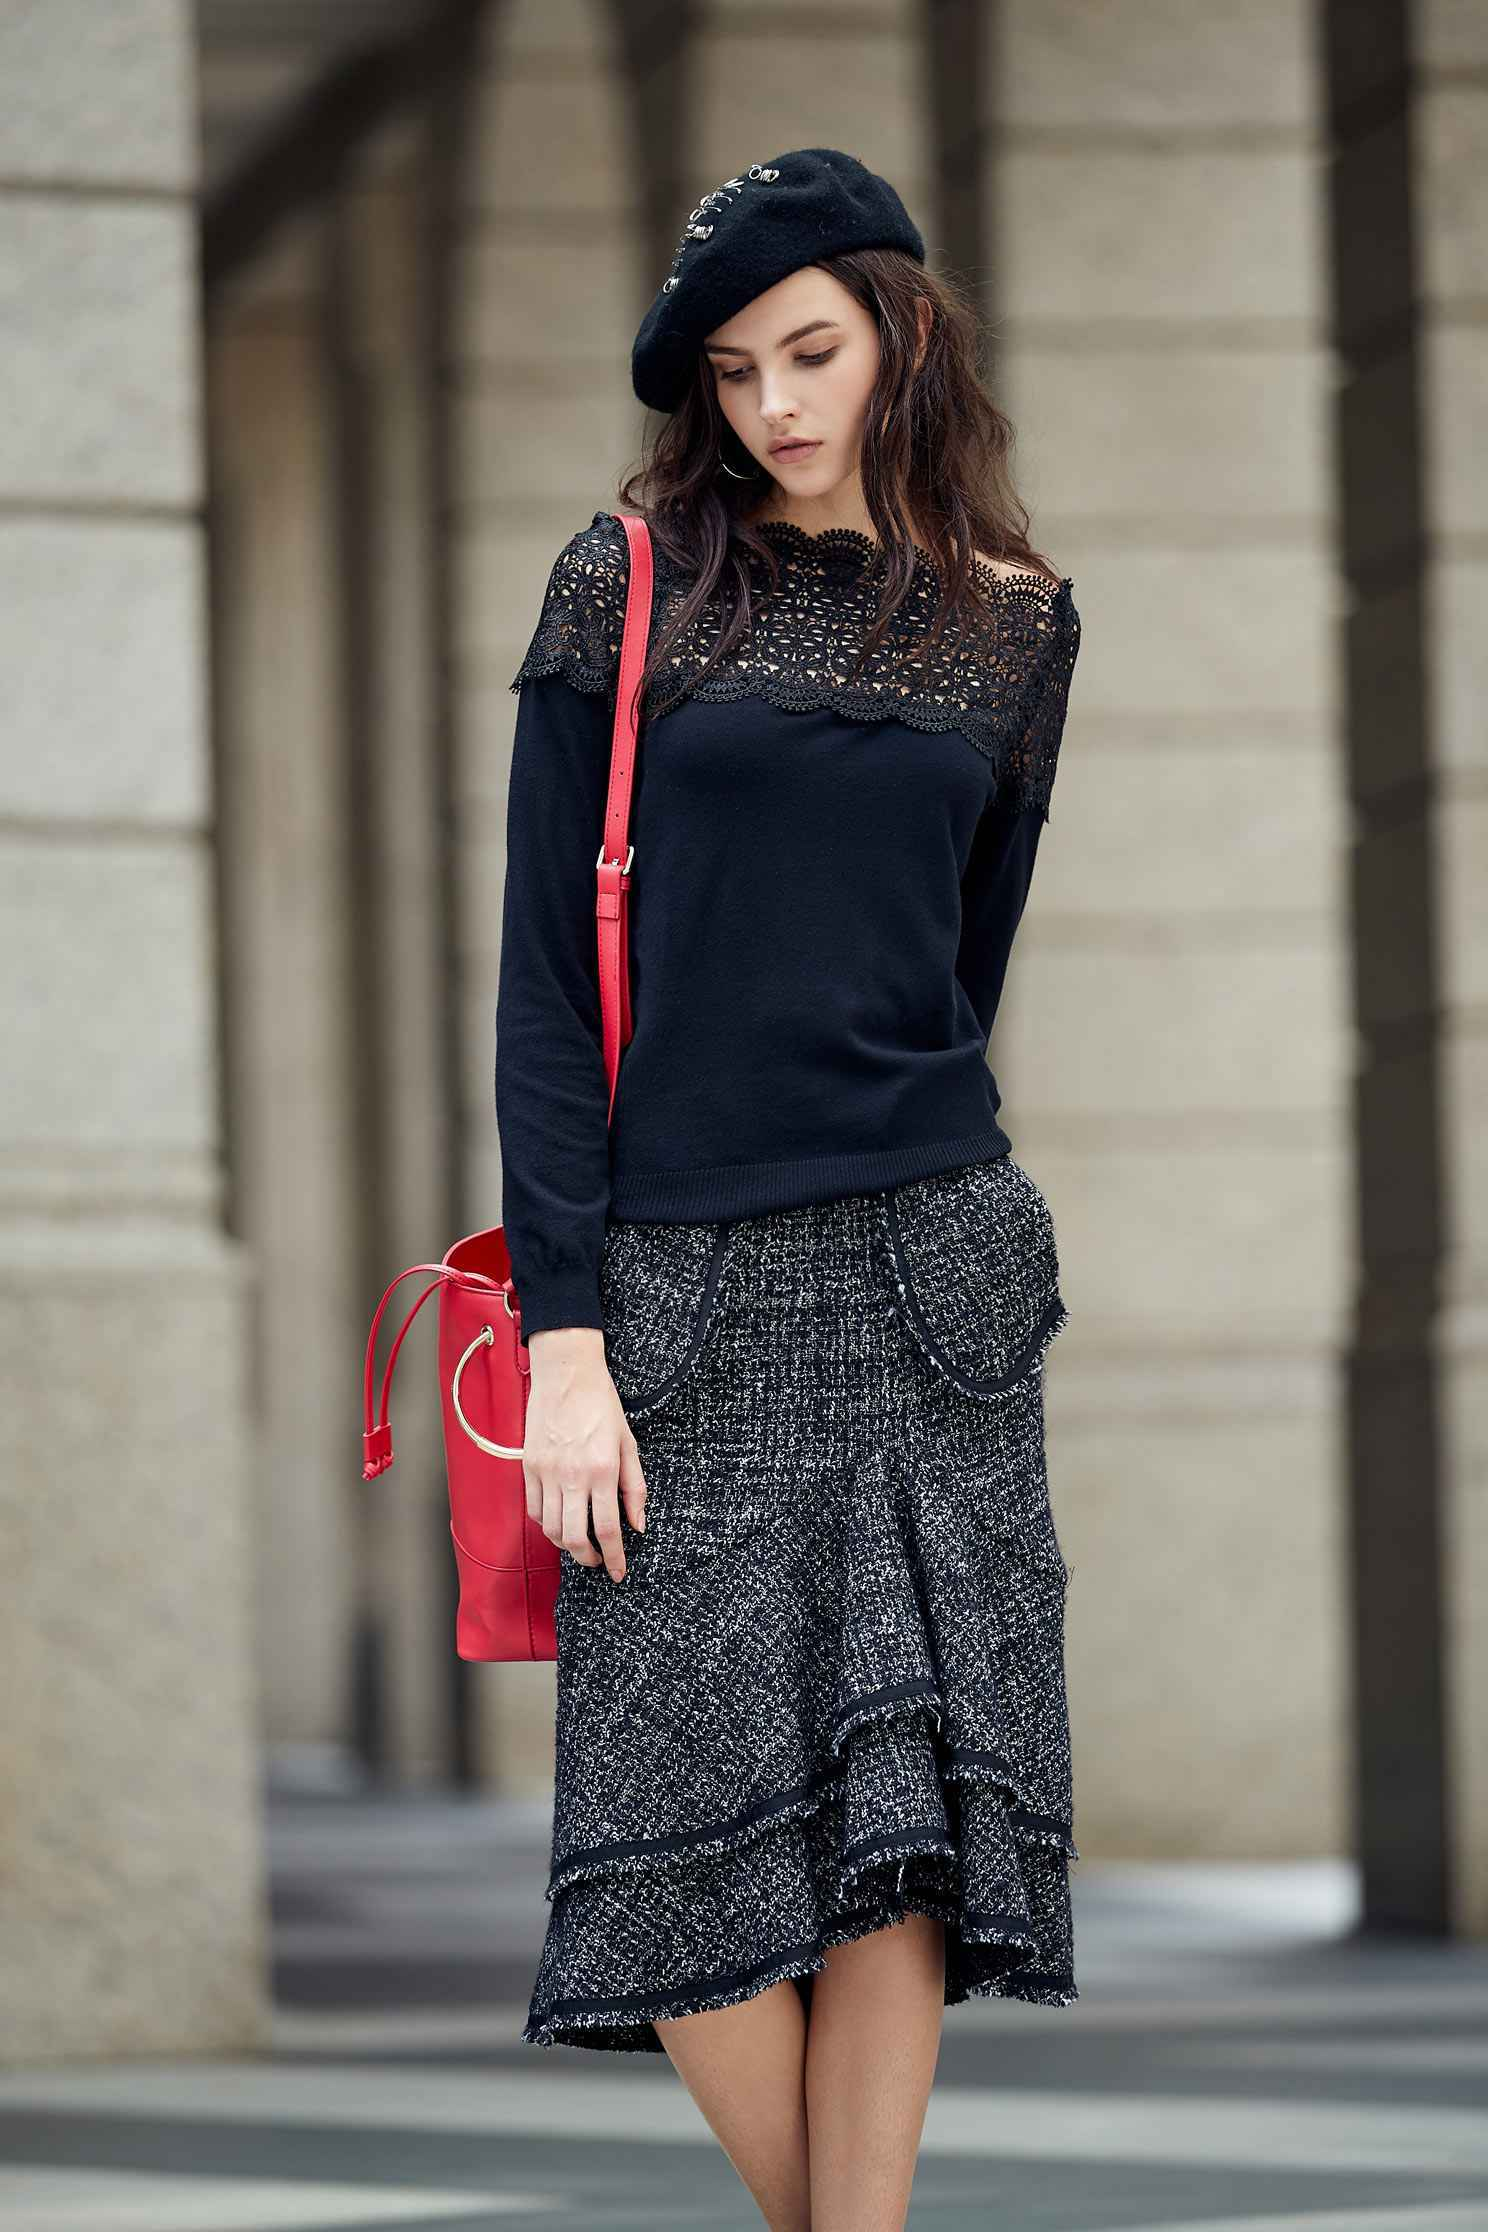 Elegant lace top,Top,Rayon,Lace,Laced Top,knitting,Knitted top,Knitted Top,長袖上衣,黑色上衣